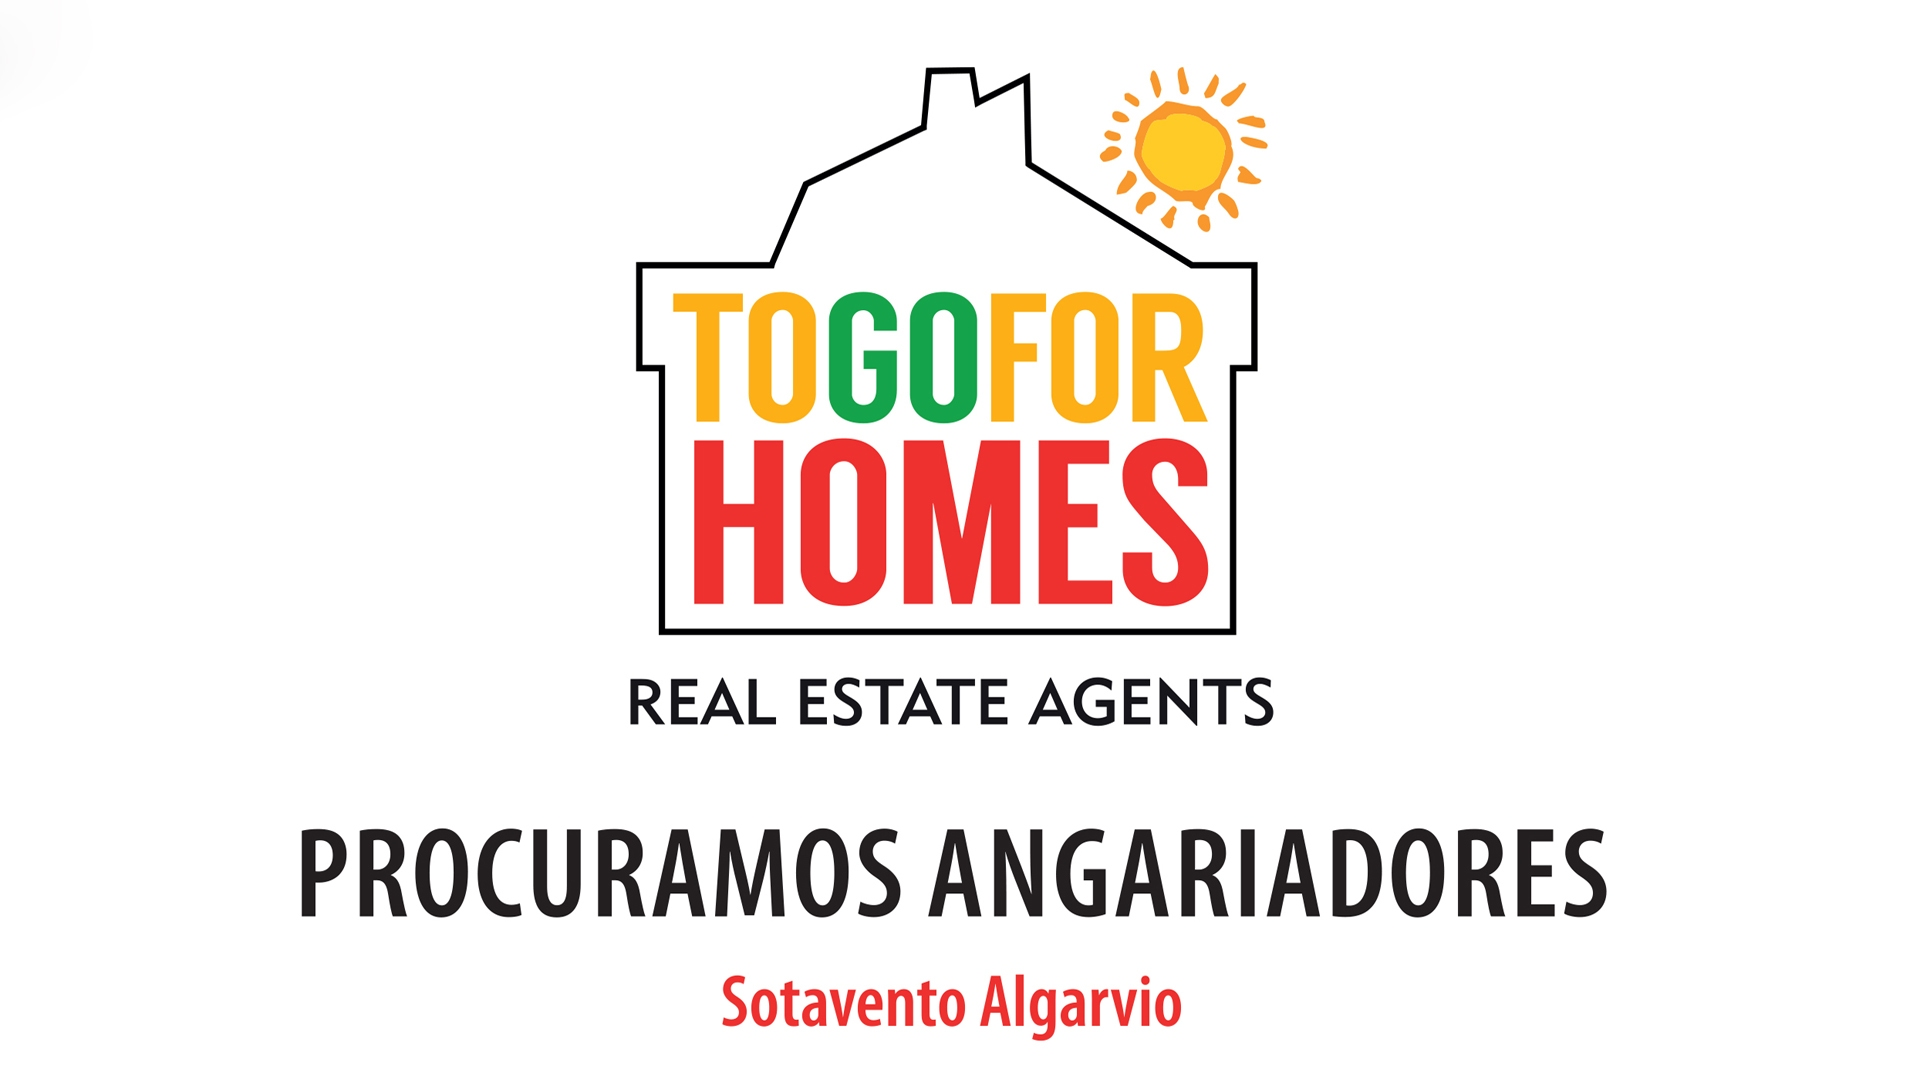 Togofor Homes is looking for Listers